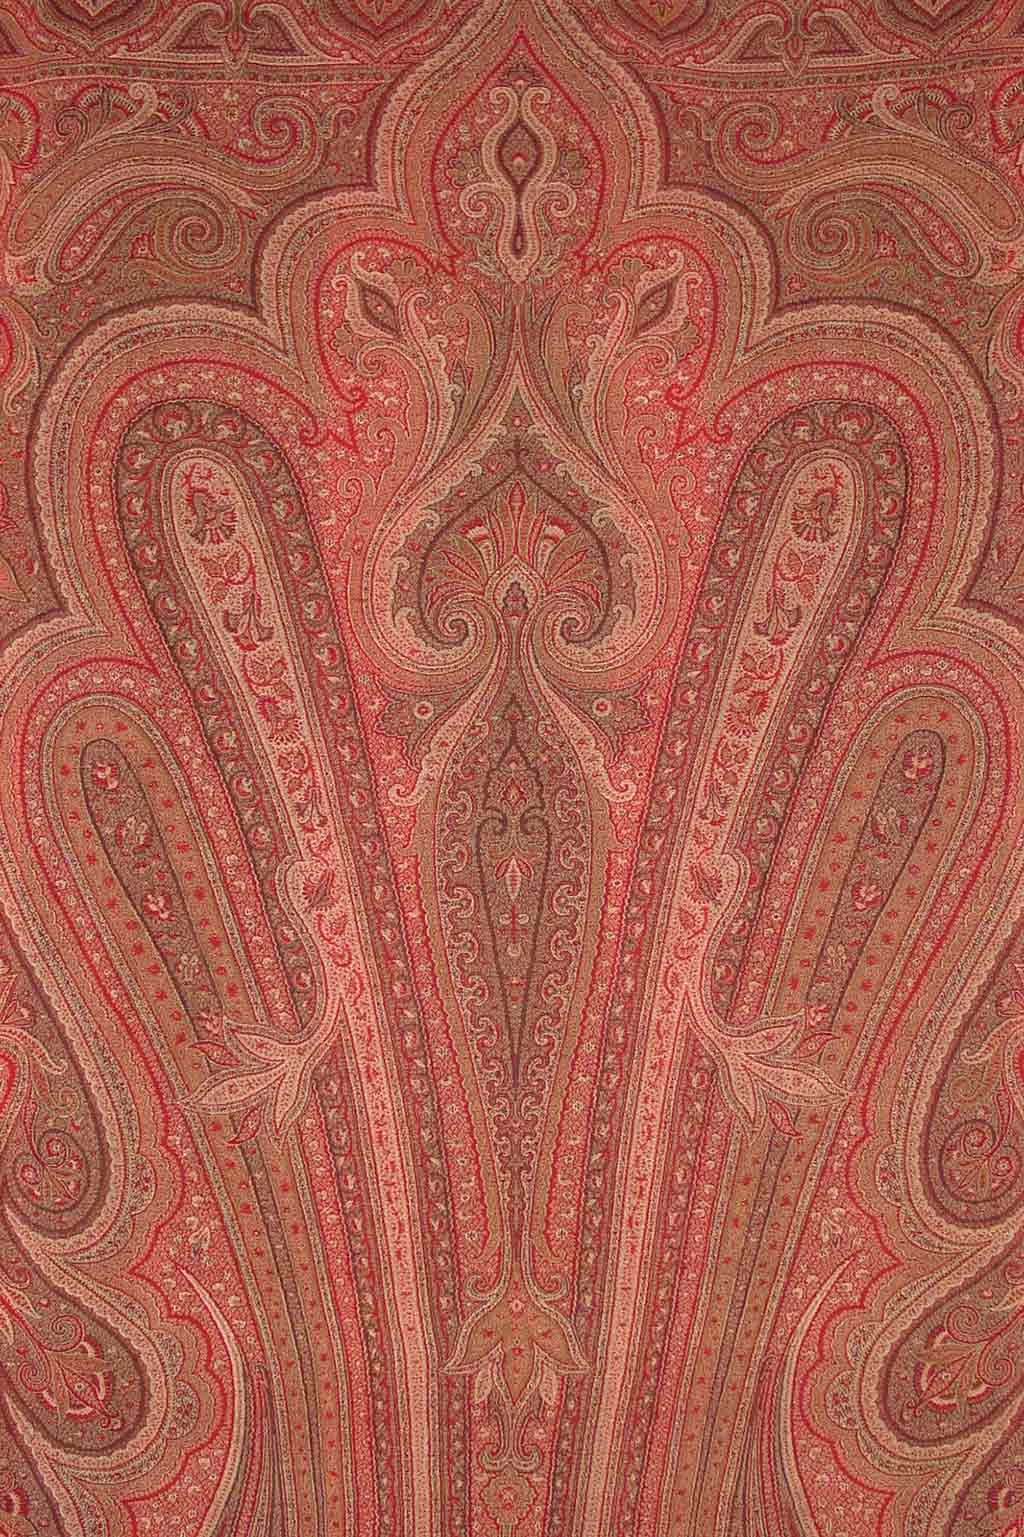 dull red intricate patterns